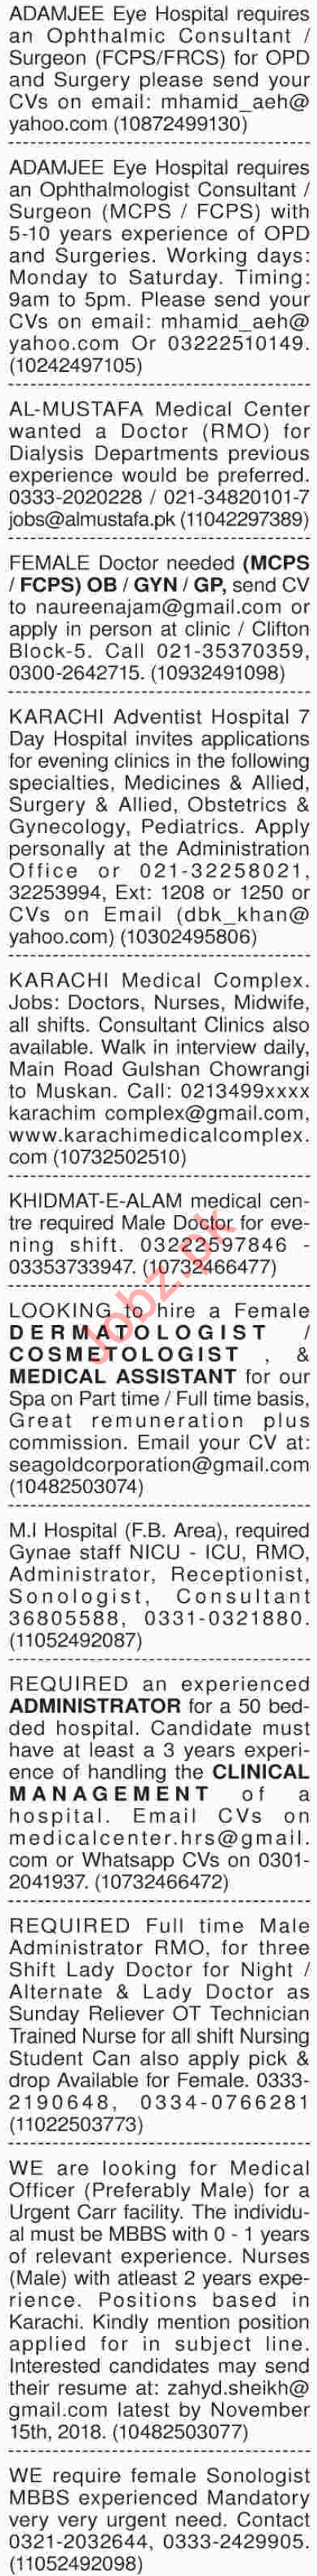 Dawn Sunday Medical Classified Ads 7/10/2018